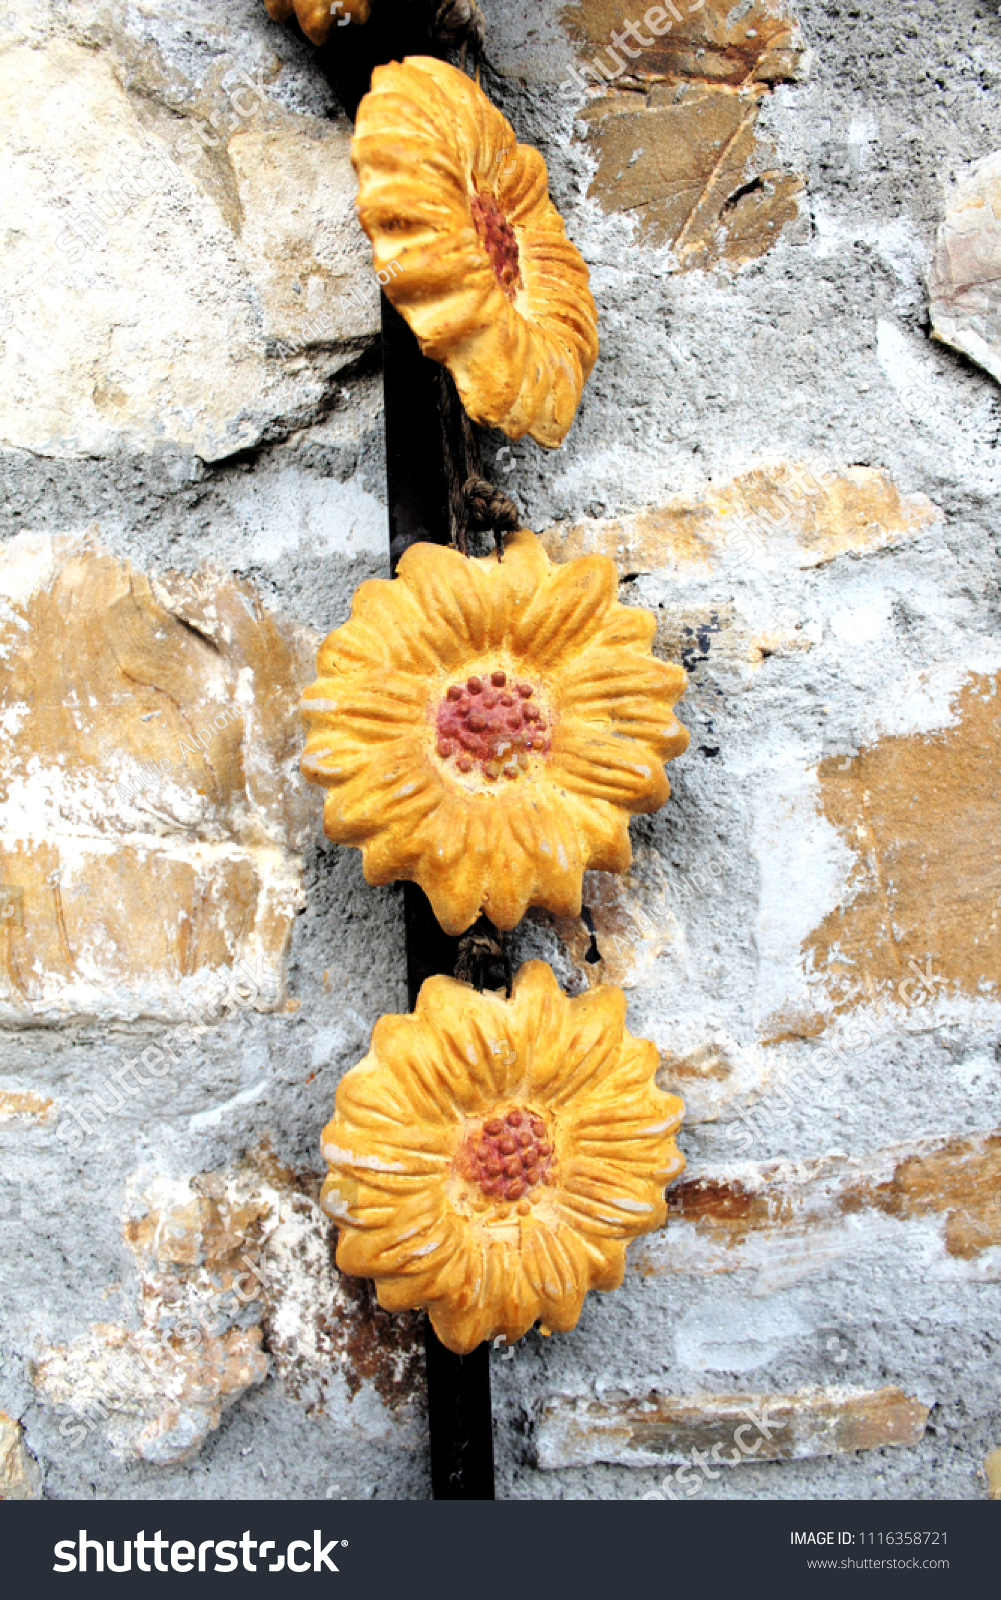 Sun Flowers Ceramic Outdoor Decoration Old Stock Photo (Royalty Free ...